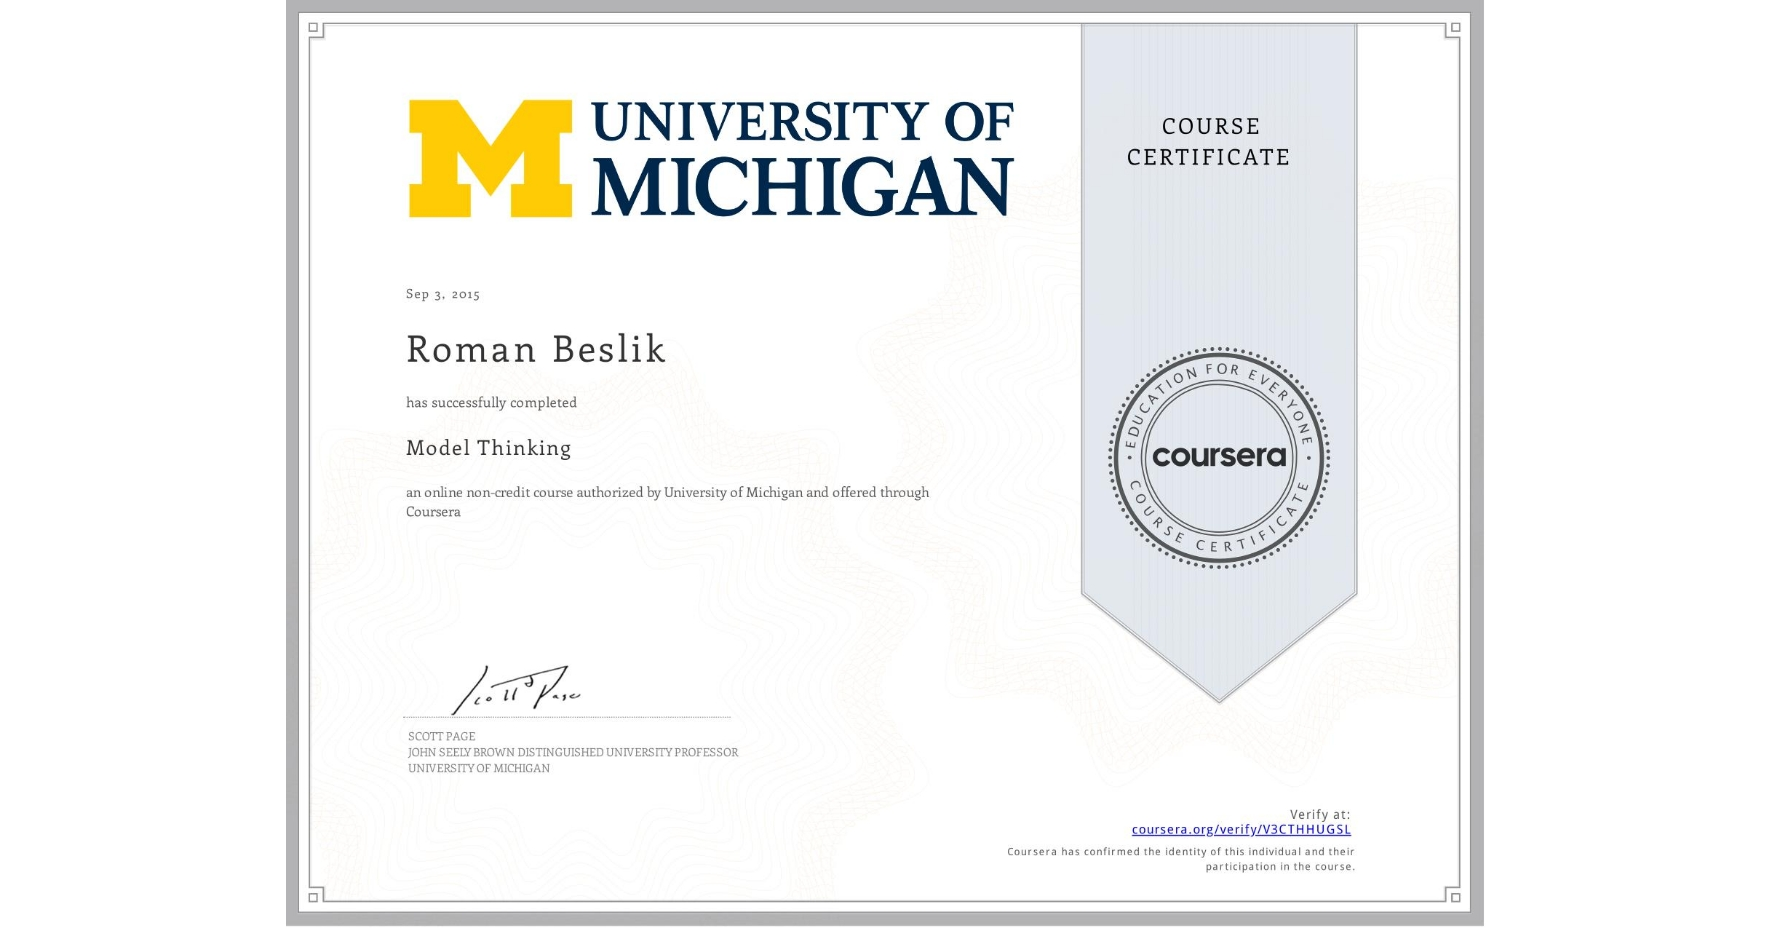 View certificate for Roman Beslik, Model Thinking, an online non-credit course authorized by University of Michigan and offered through Coursera